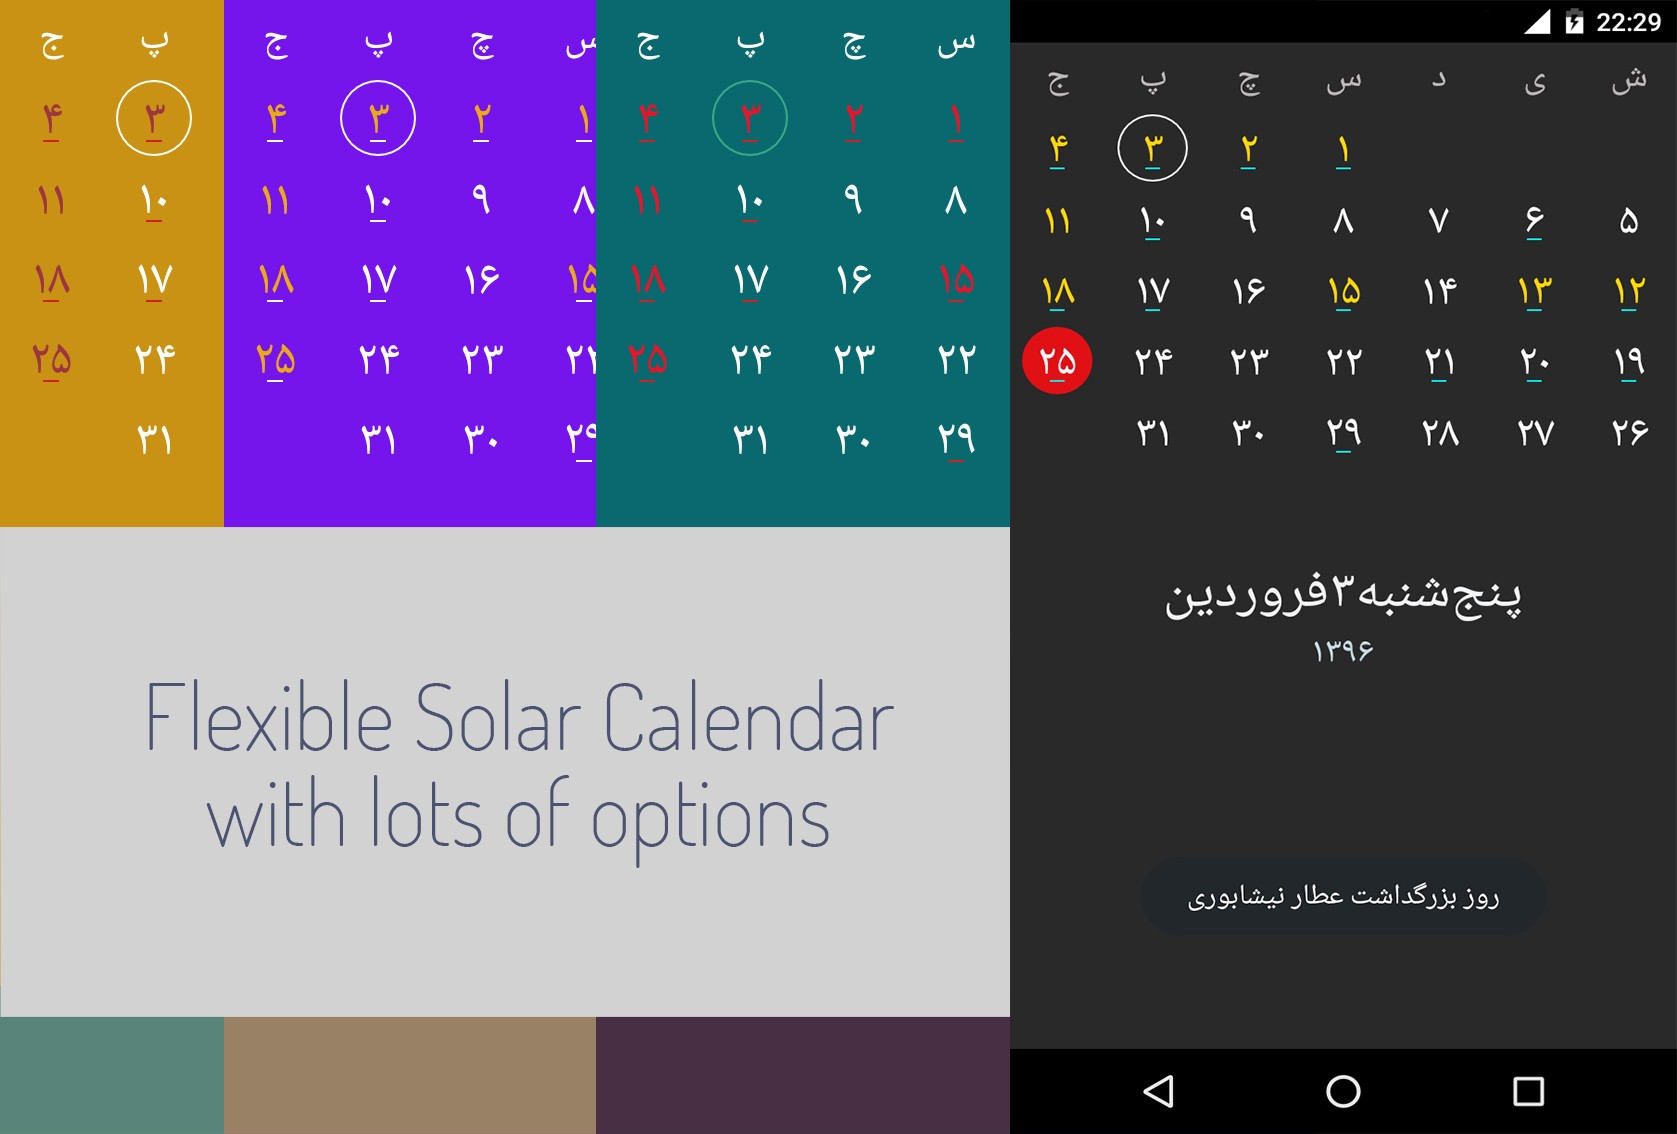 Persian calendar view for android — افزونه تقویم فارسی اندروید